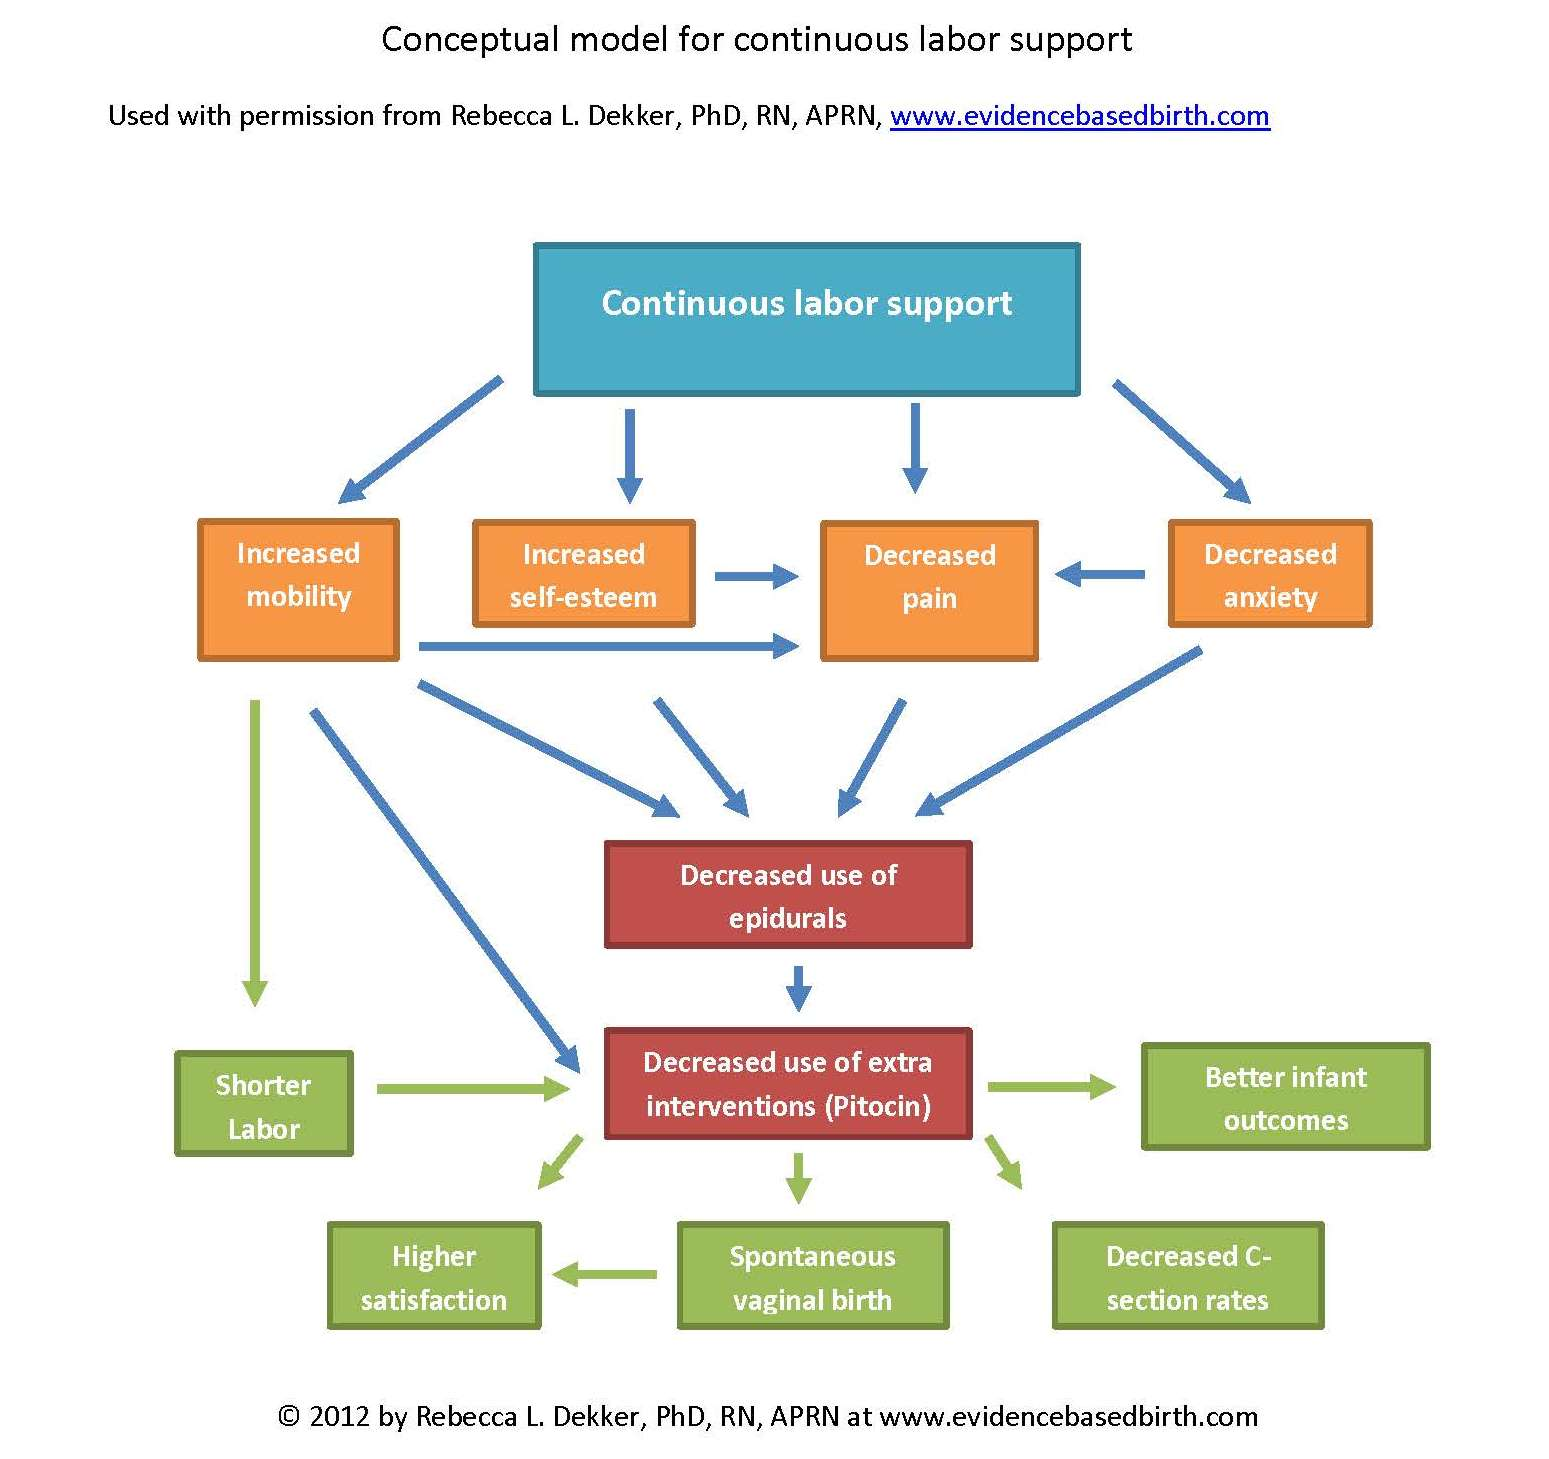 Conceptual Model for Continuous Labor Support from EvidenceBasedBirth.com